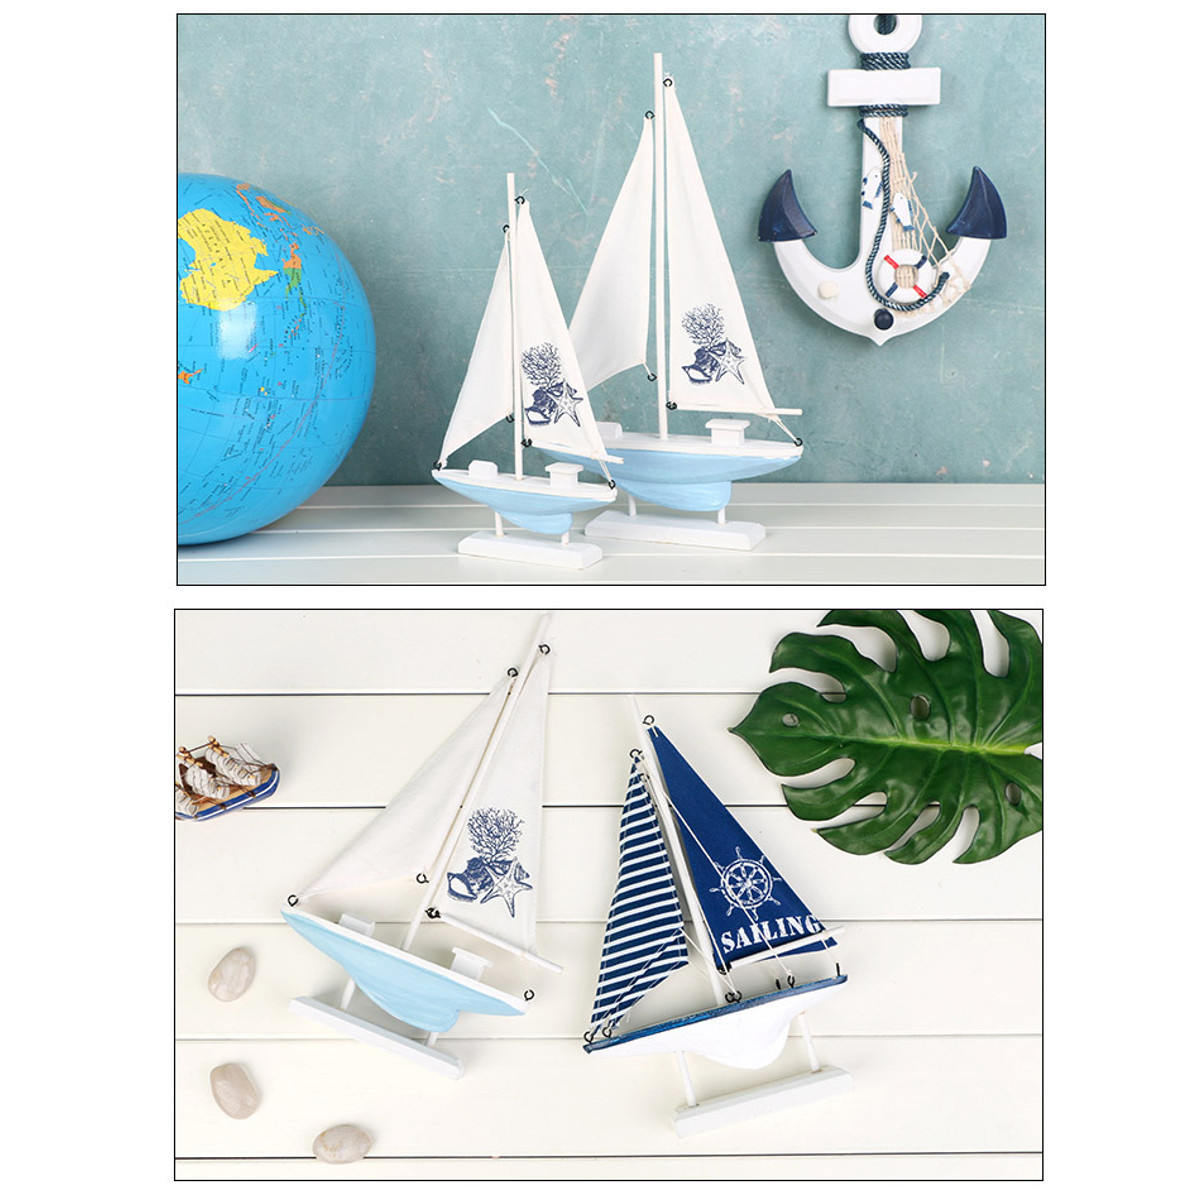 Ship-Assembly-Model-DIY-Kit-Wooden-Sailing-Boat-Decor-Wood-Toy-Gift-Collectables thumbnail 9